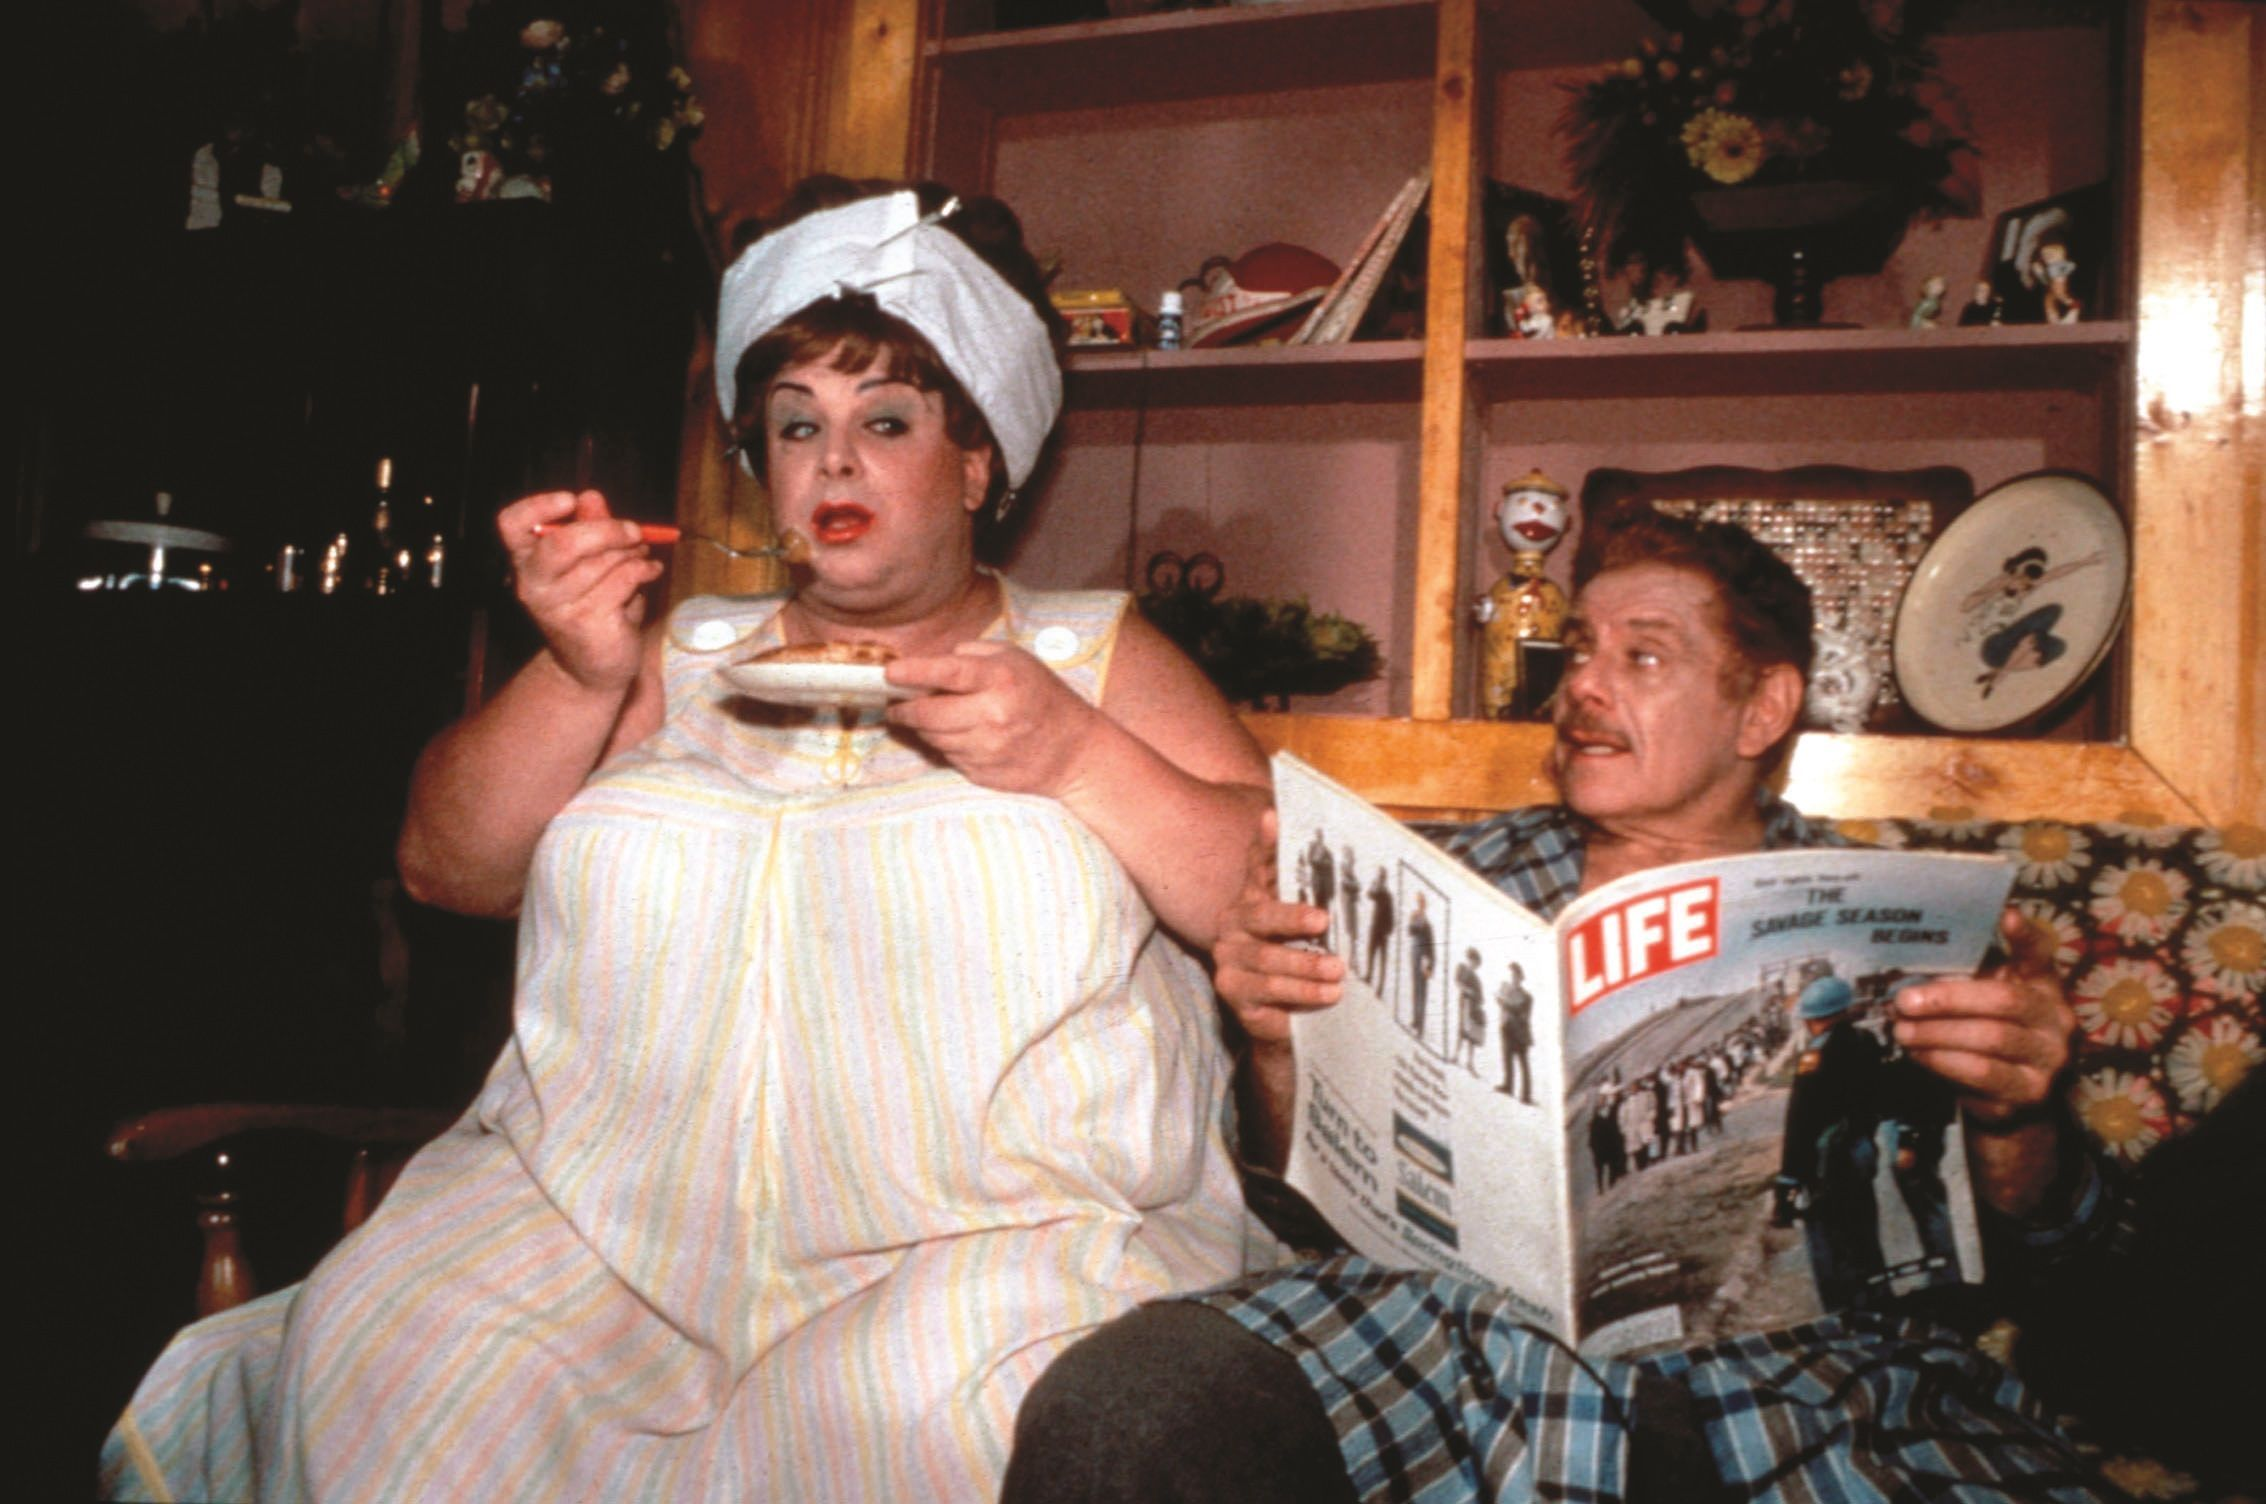 DANCE COMEDY: American classic Hairspray starring Divine and Jerry Stiller